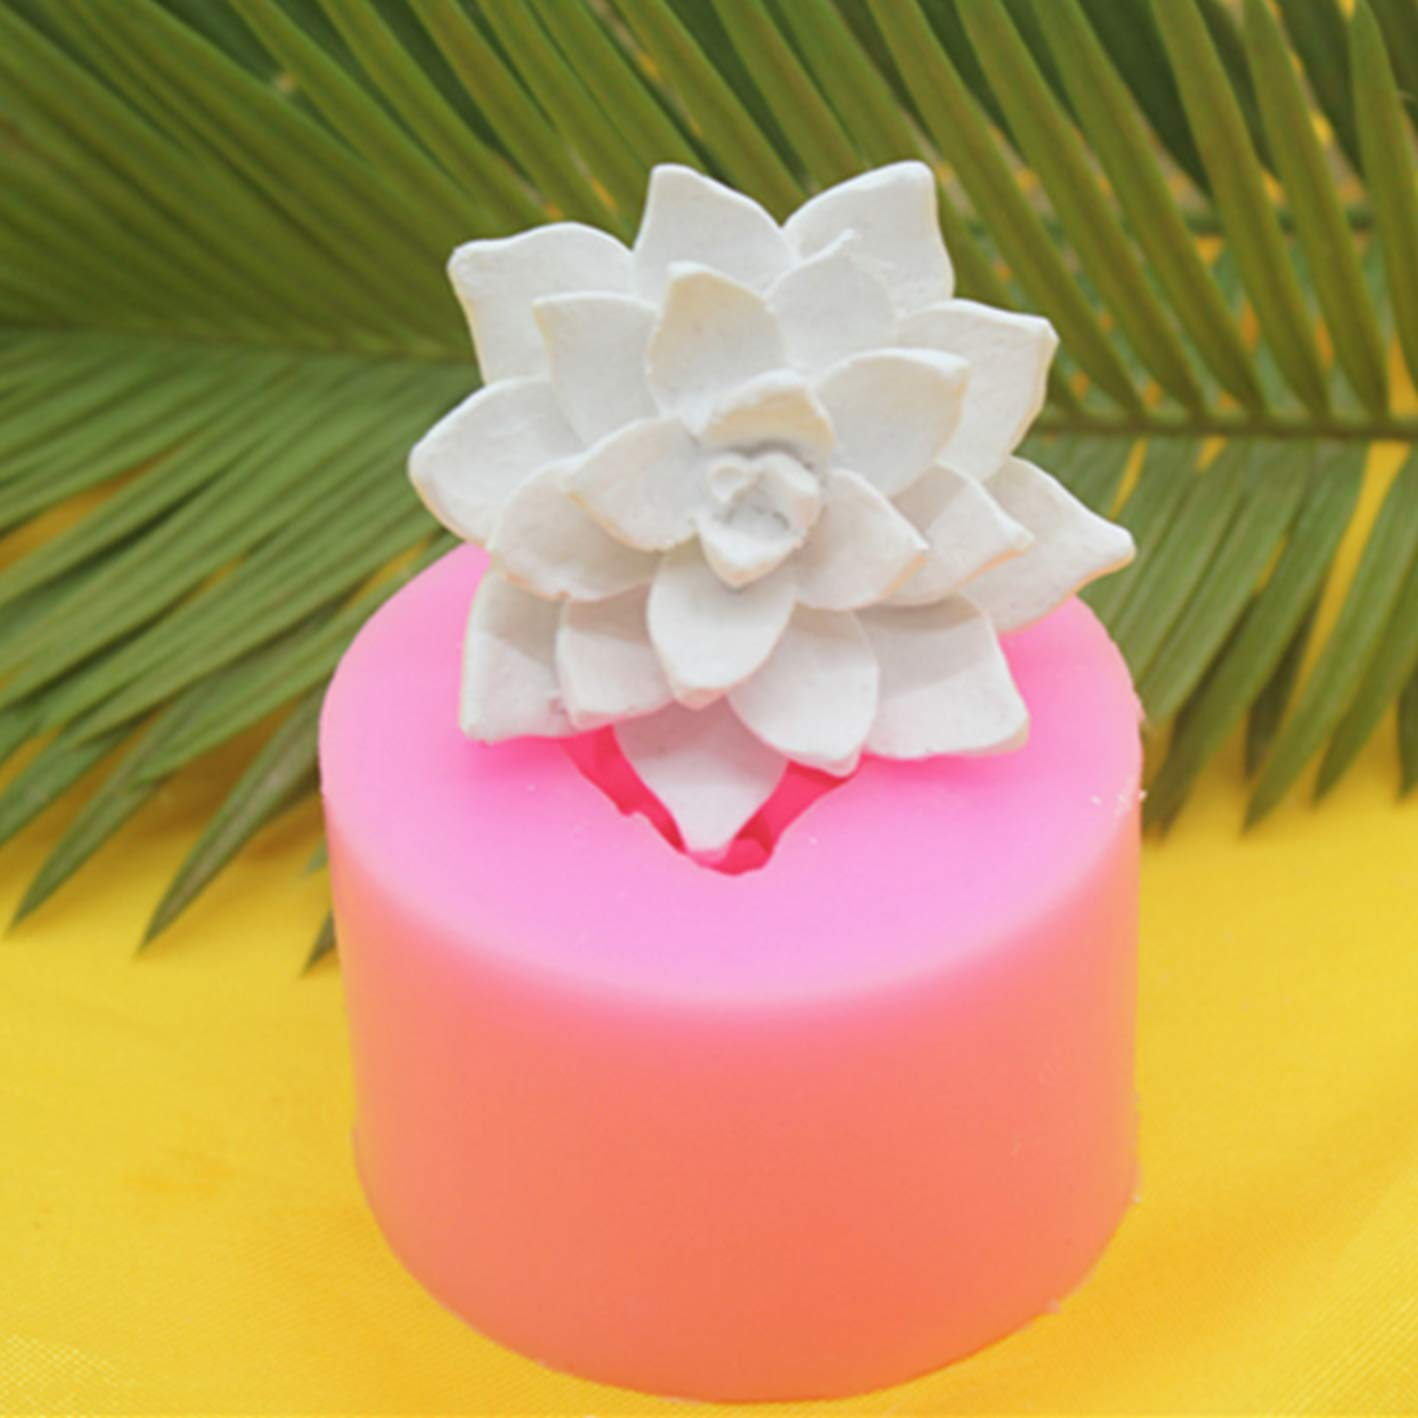 Silicone Resin Clay Molds Handmade Resin Mold Polymer Clay Flower Fondant Mold Sugar Craft Mold